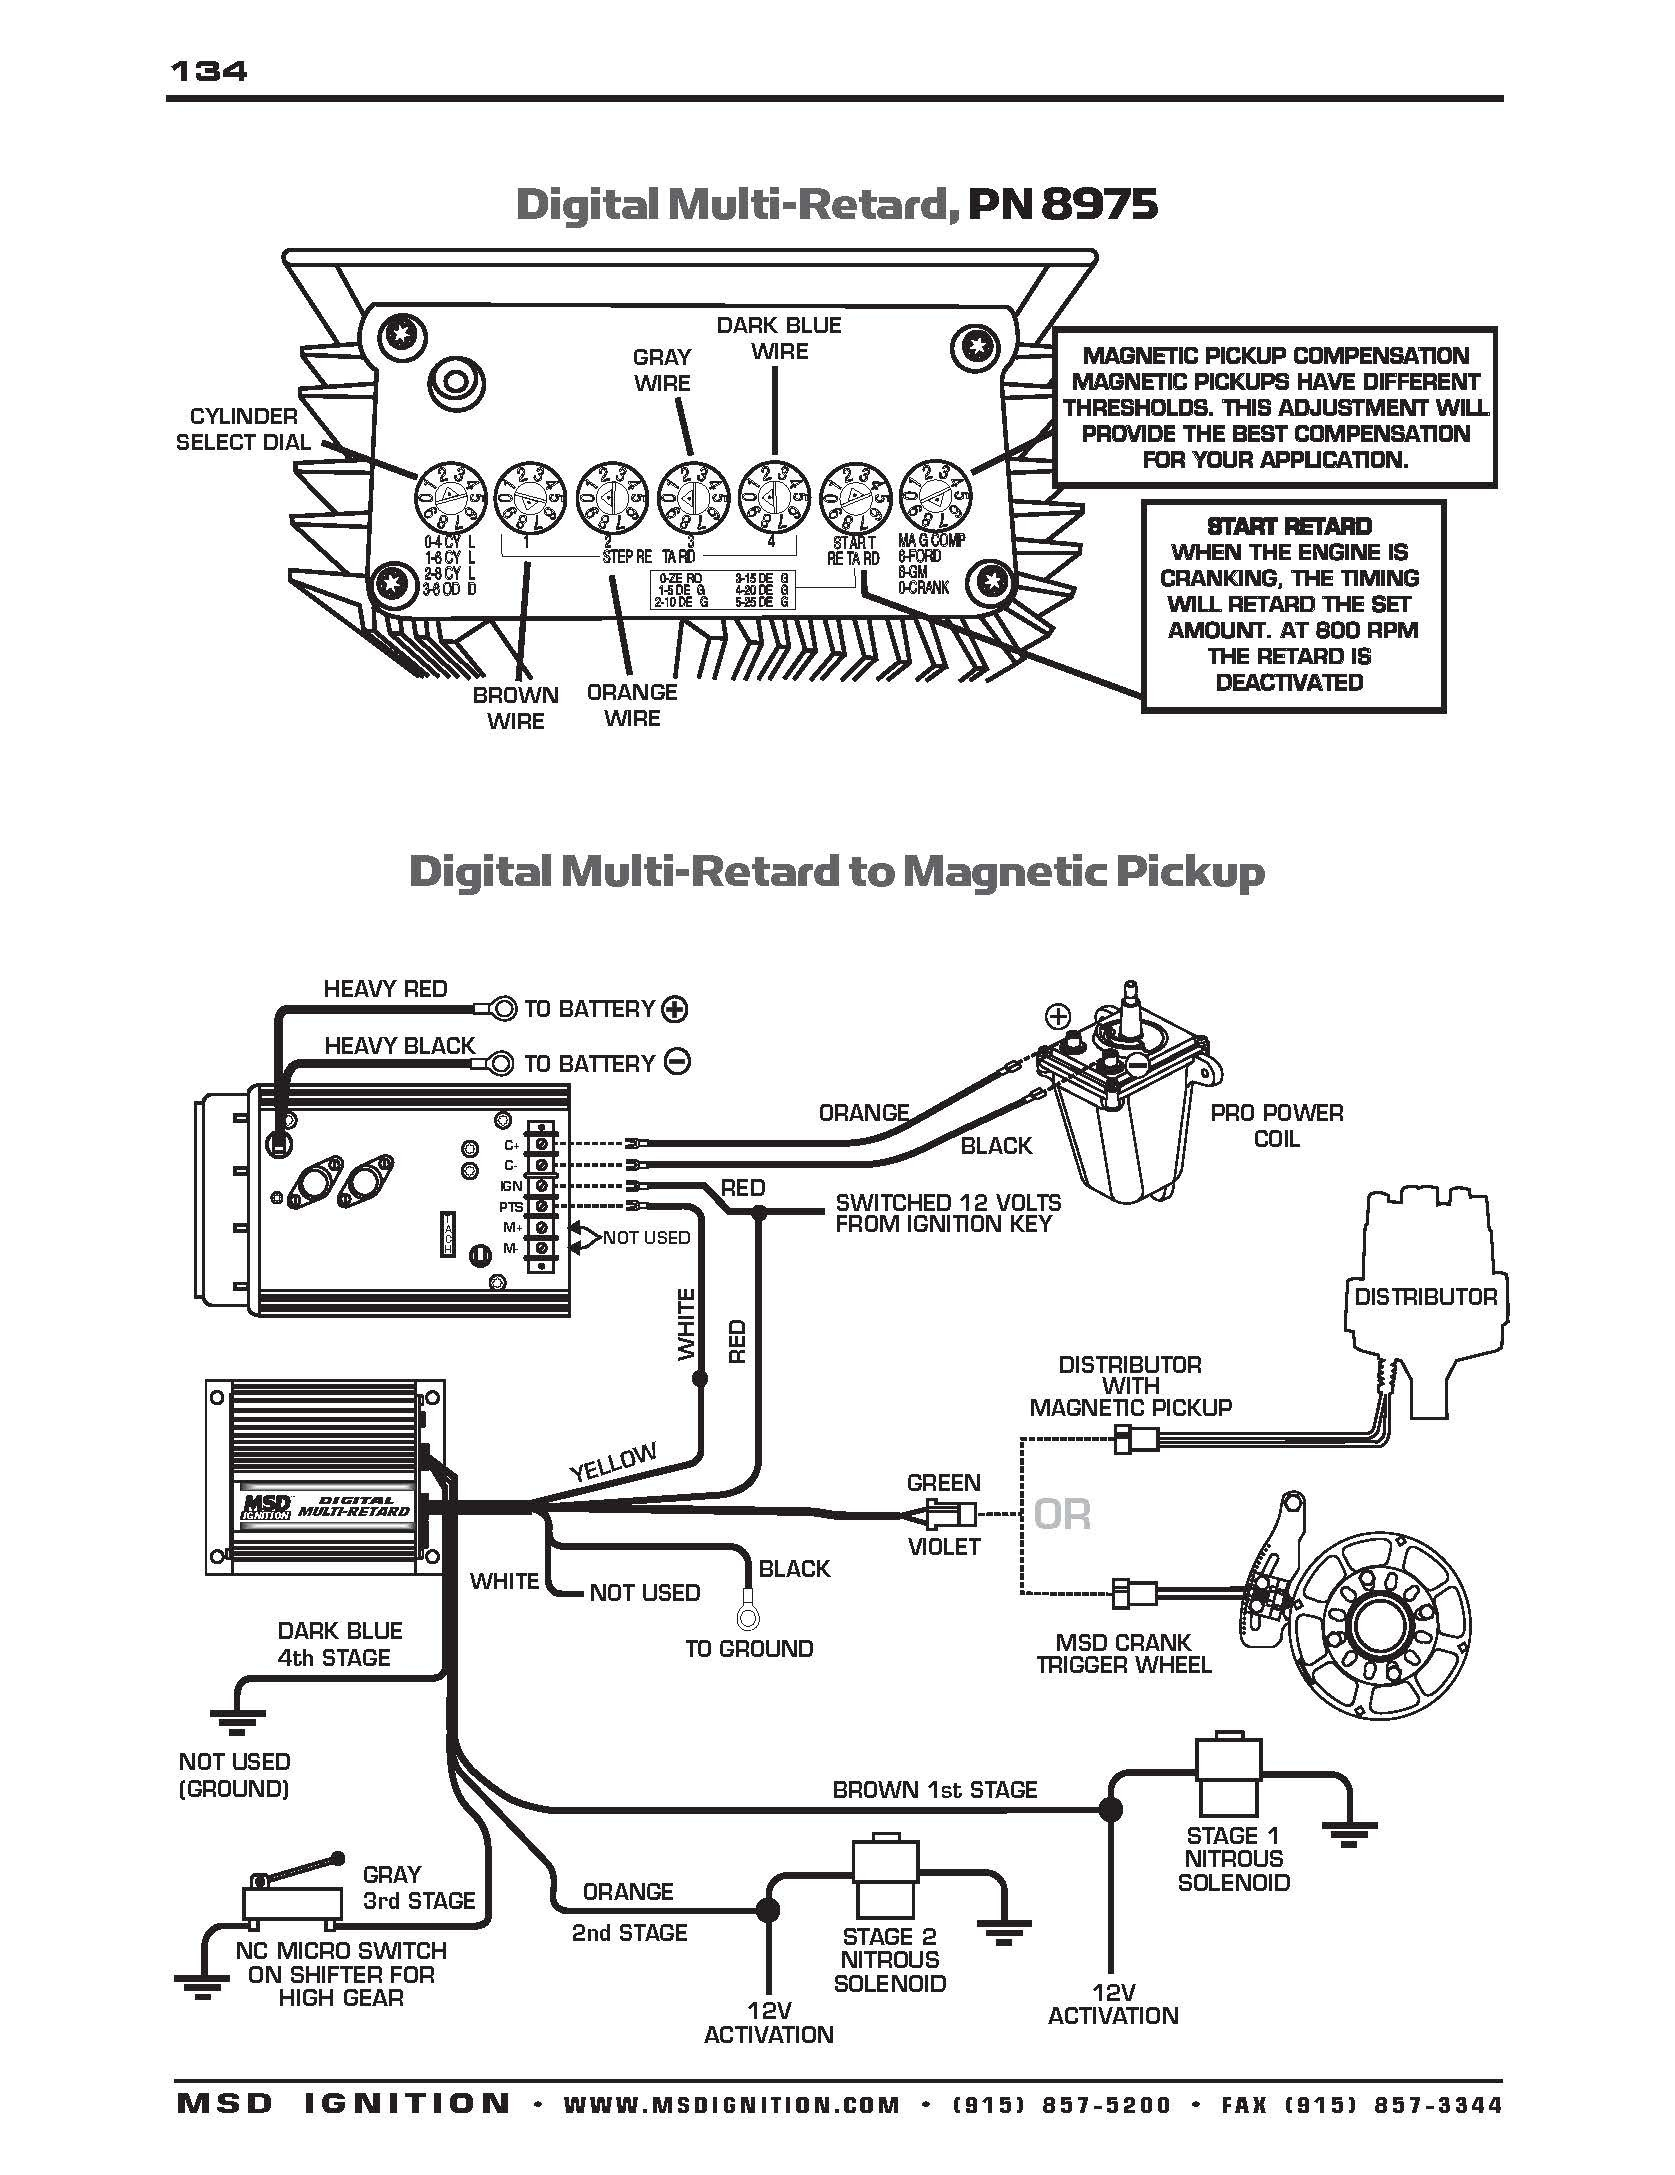 Msd Digital 7 Wiring Diagram from i2.wp.com